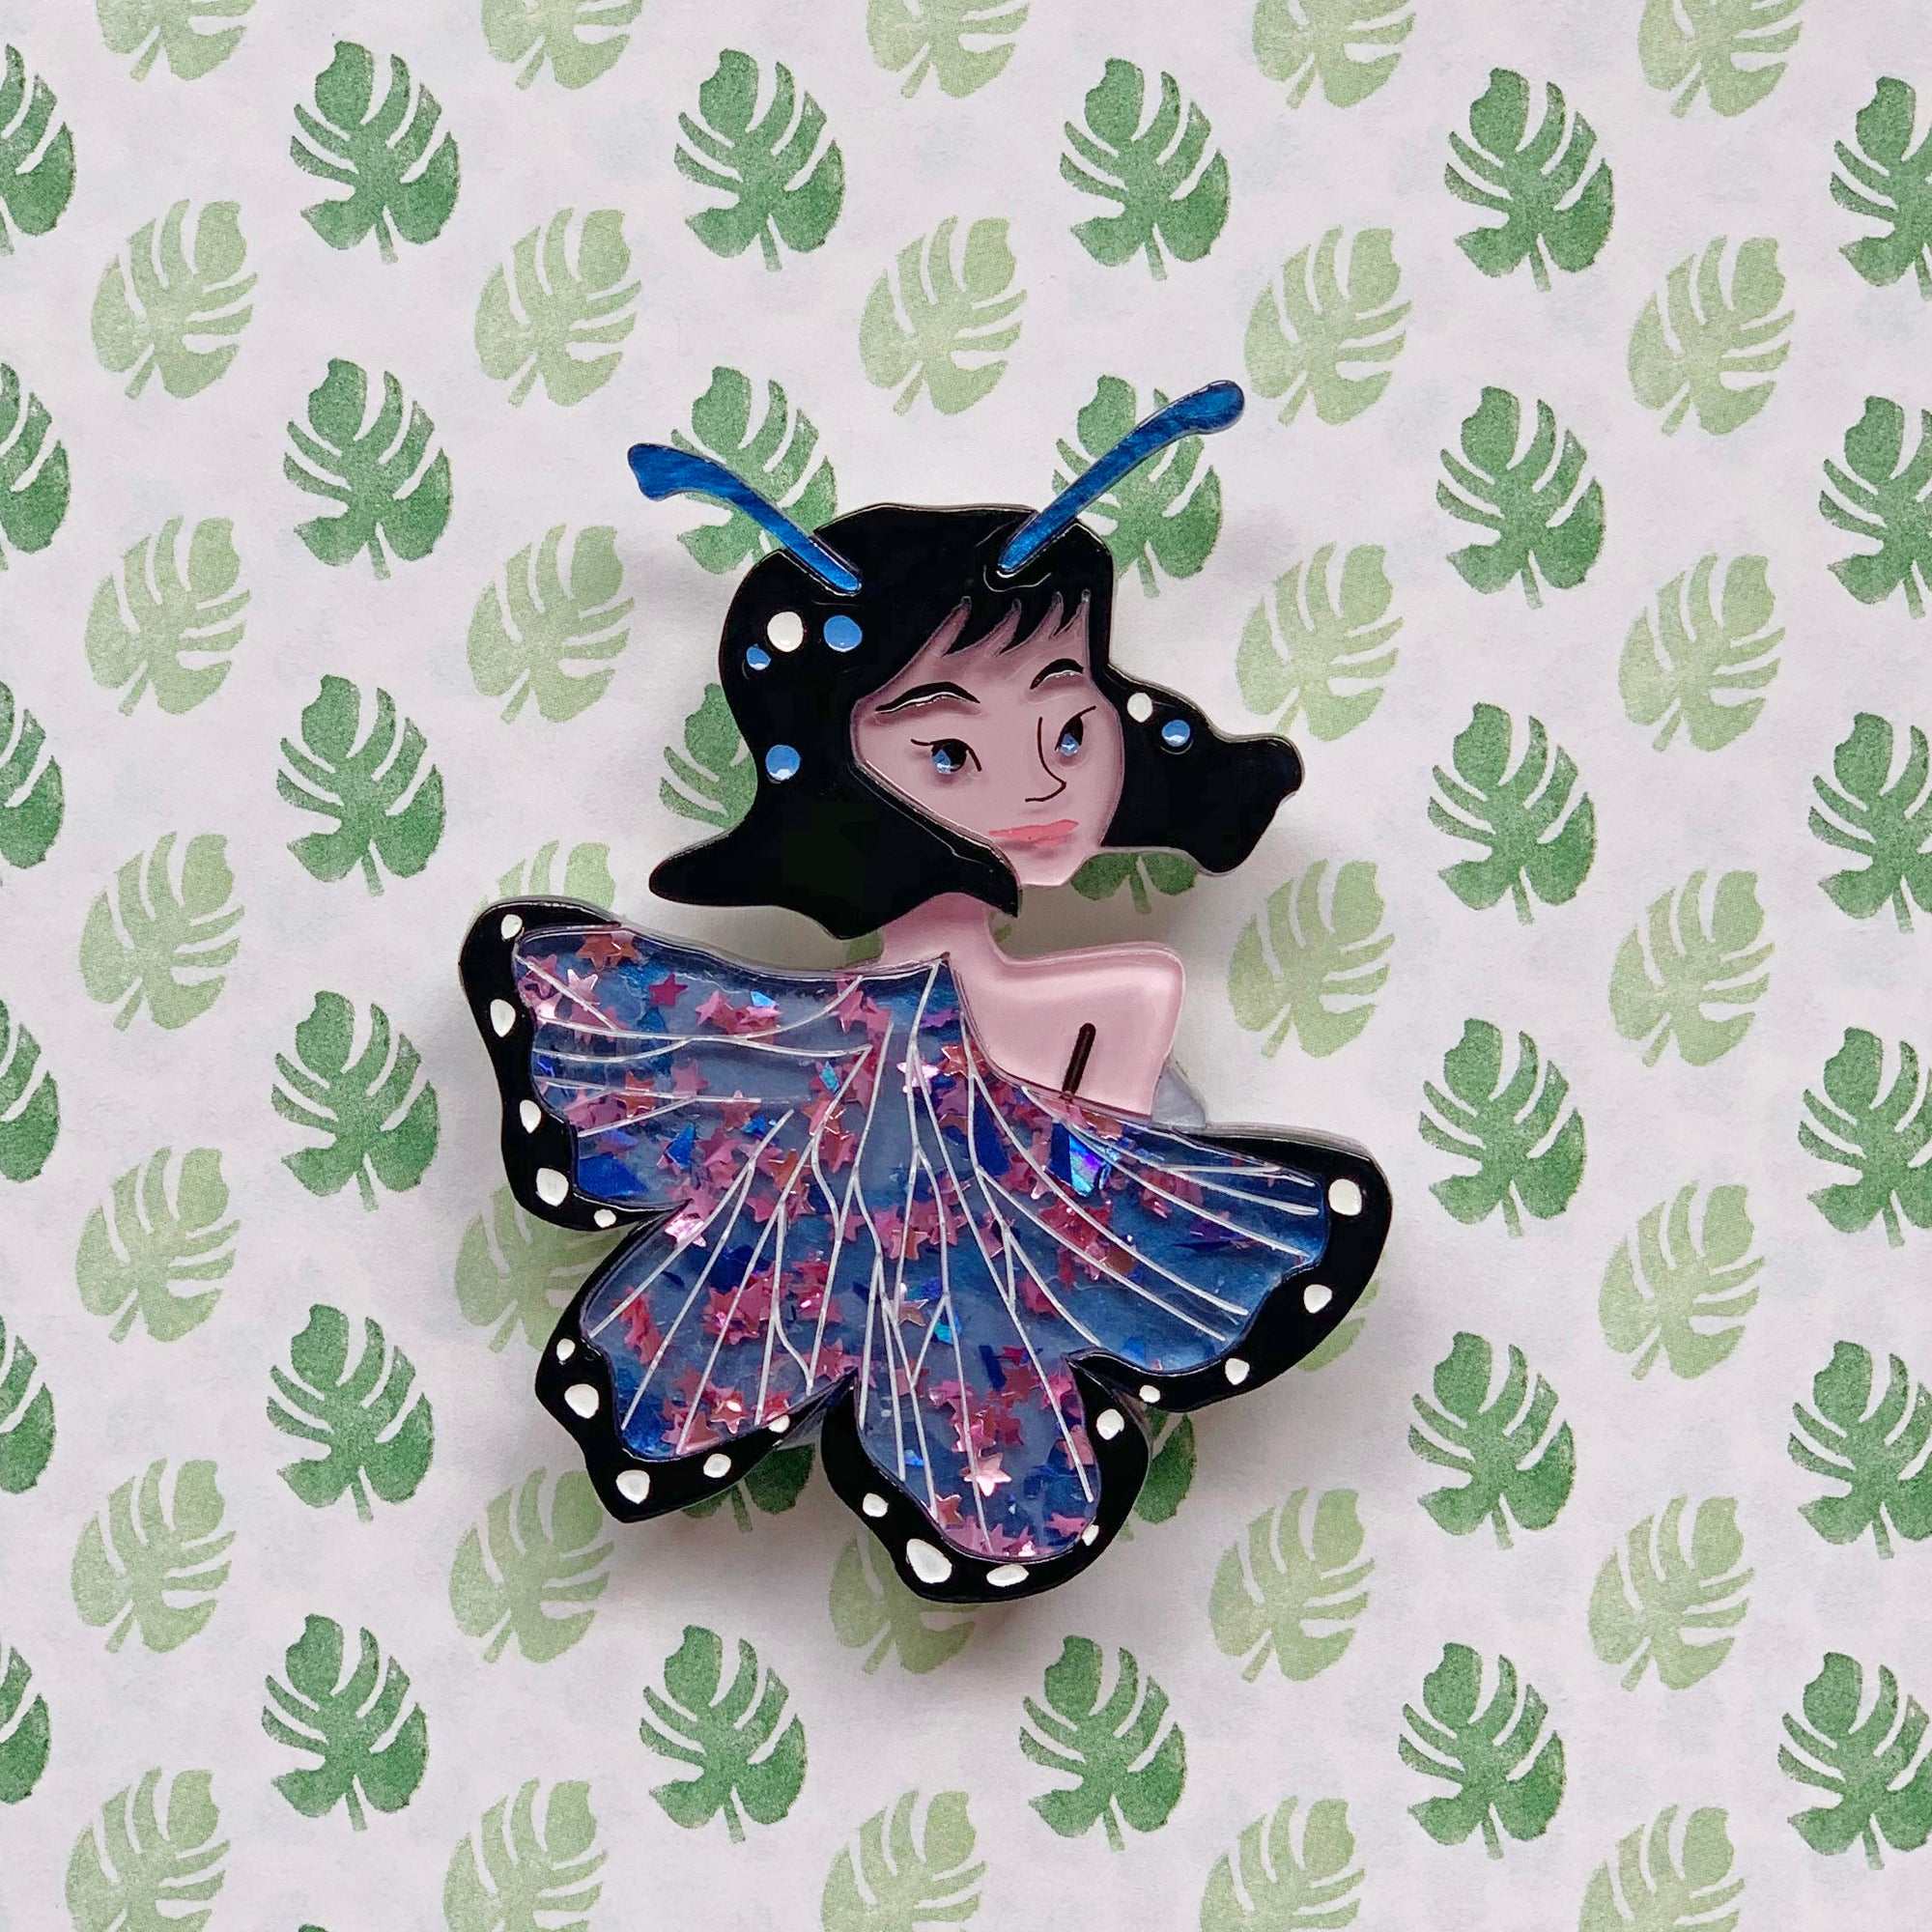 Starr the Butterfly Lady Brooch by SLB x Asma Original